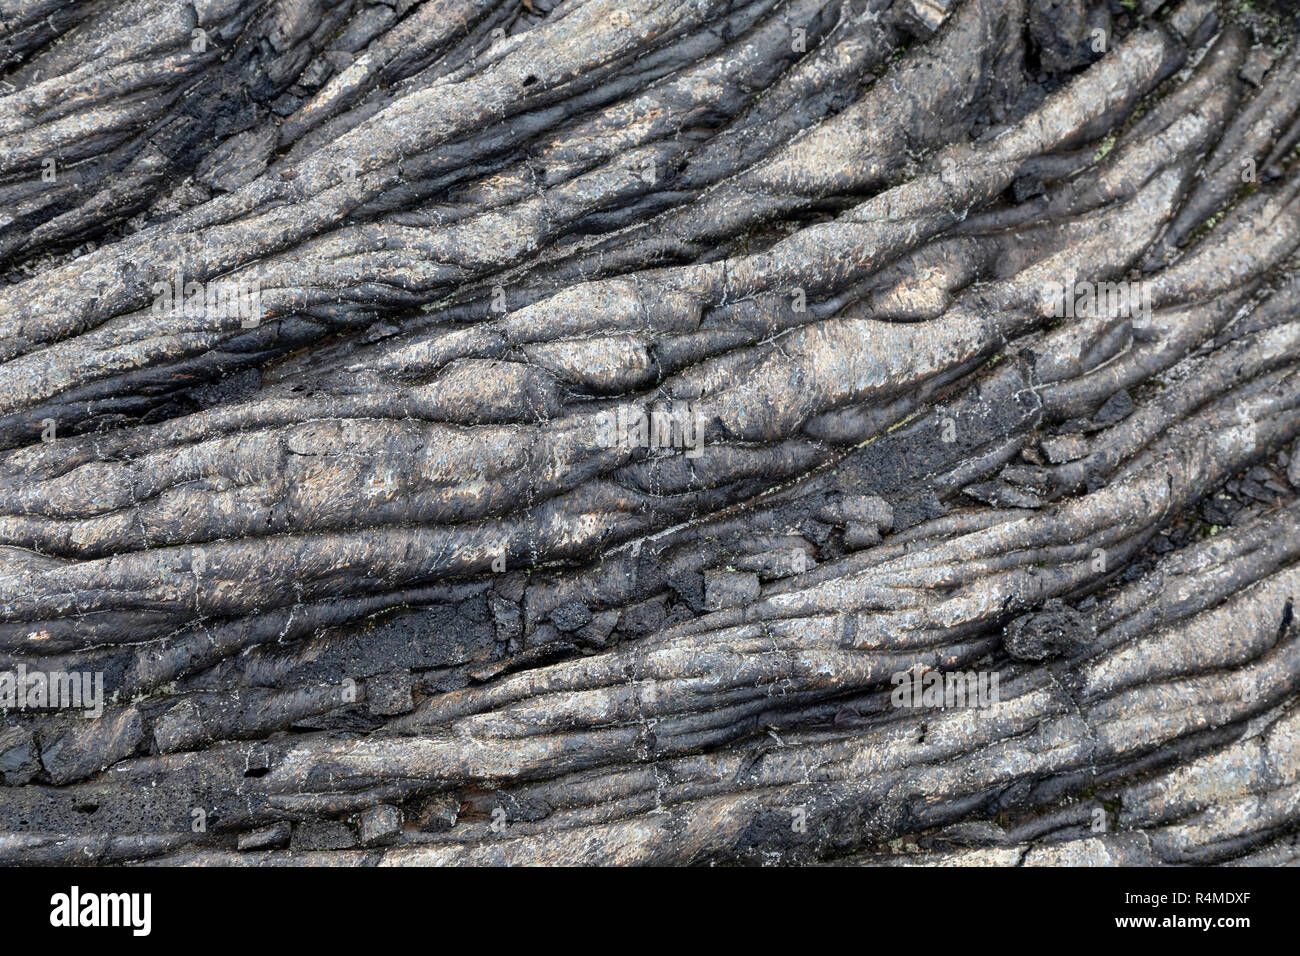 Hawaii Volcanoes National Park, Hawaii - Detail of an old lava flow from the Kilauea volcano. - Stock Image